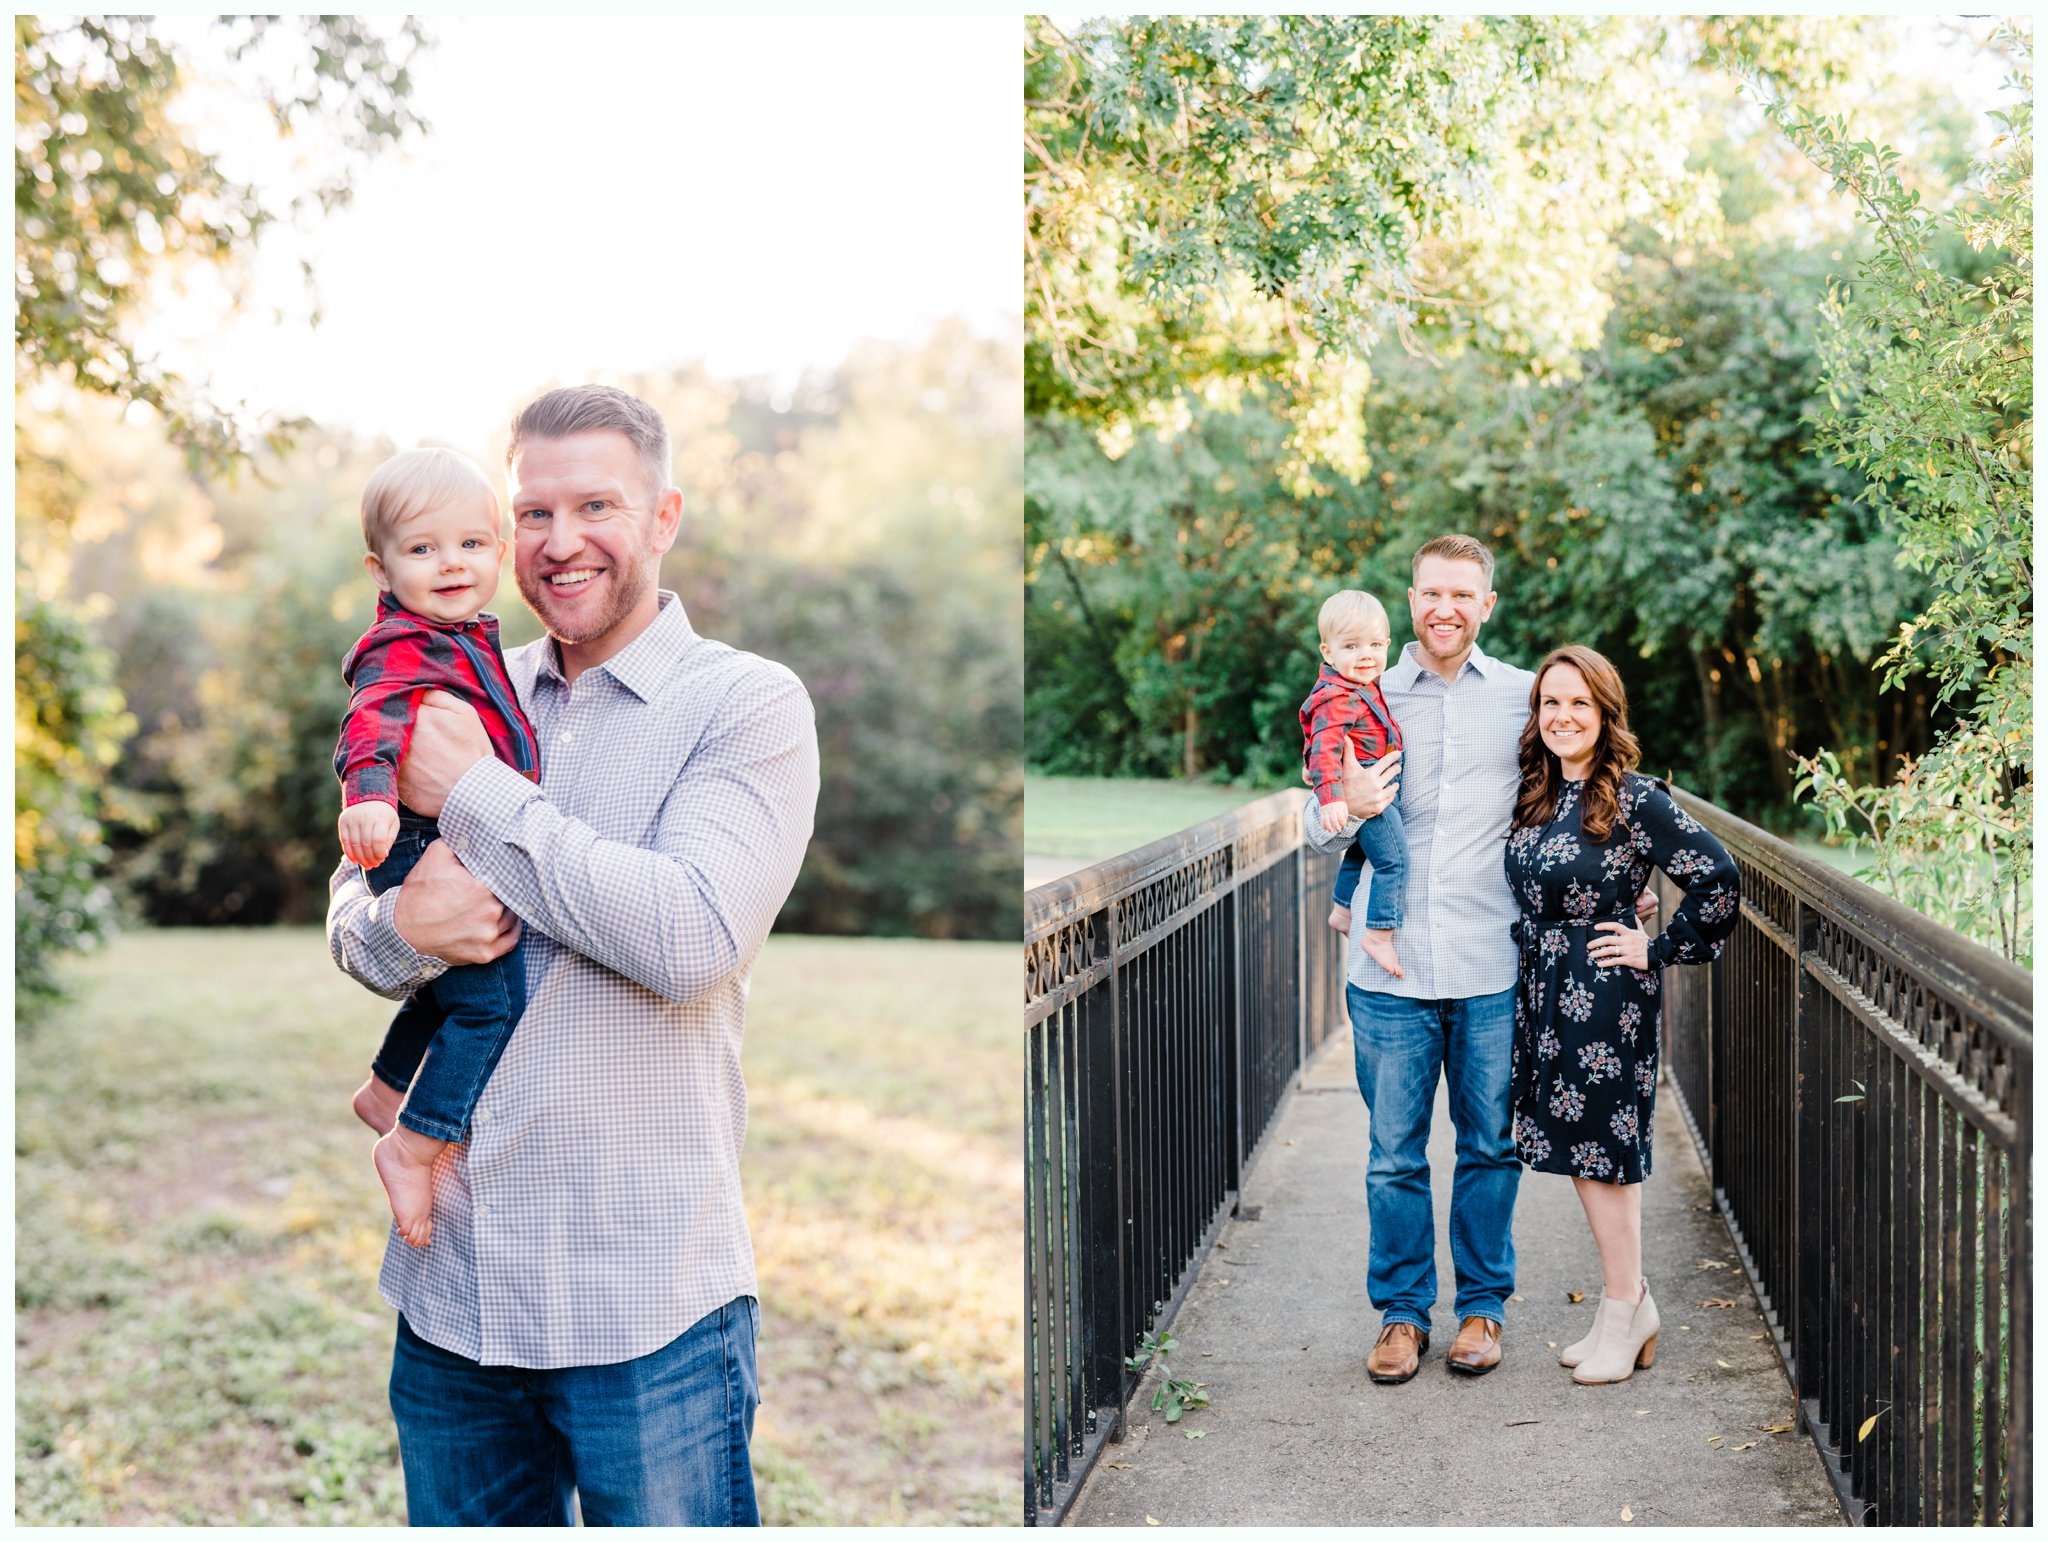 DALLASFAMILYSESSION_3171.jpg